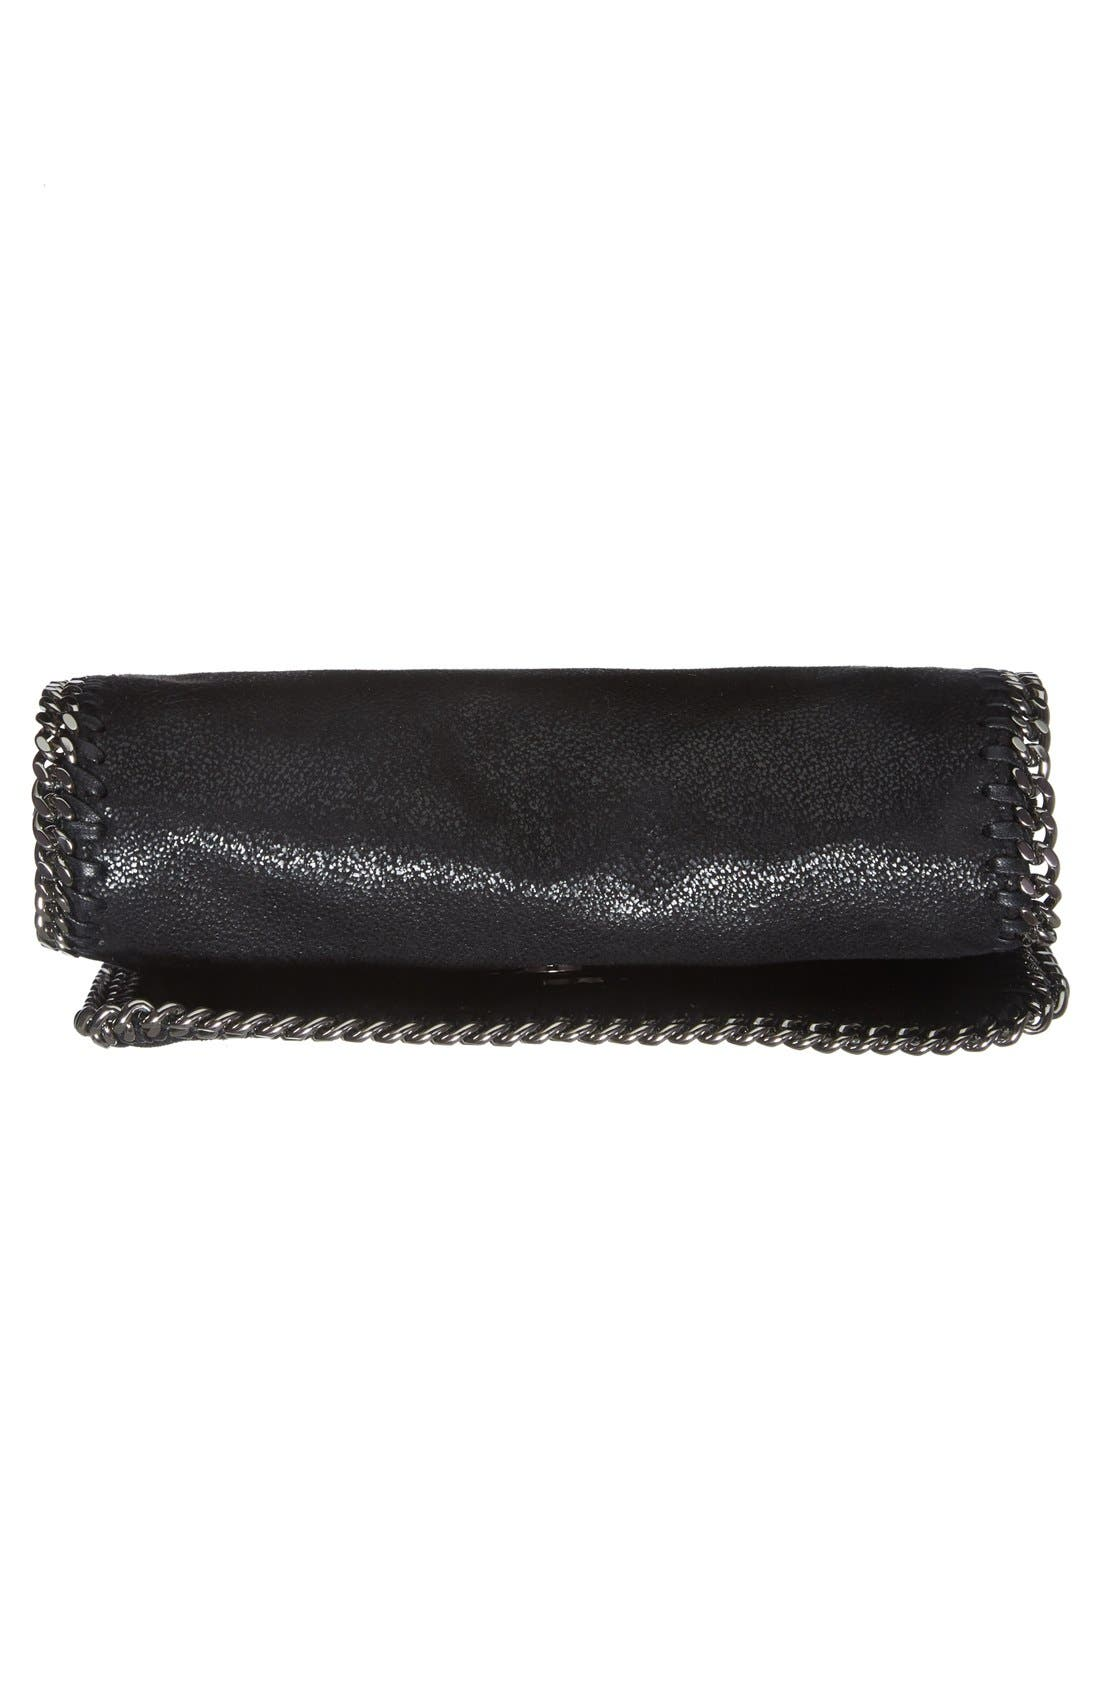 STELLA MCCARTNEY,                             'Falabella Crystal' Embellished Faux Leather Crossbody Bag,                             Alternate thumbnail 5, color,                             001